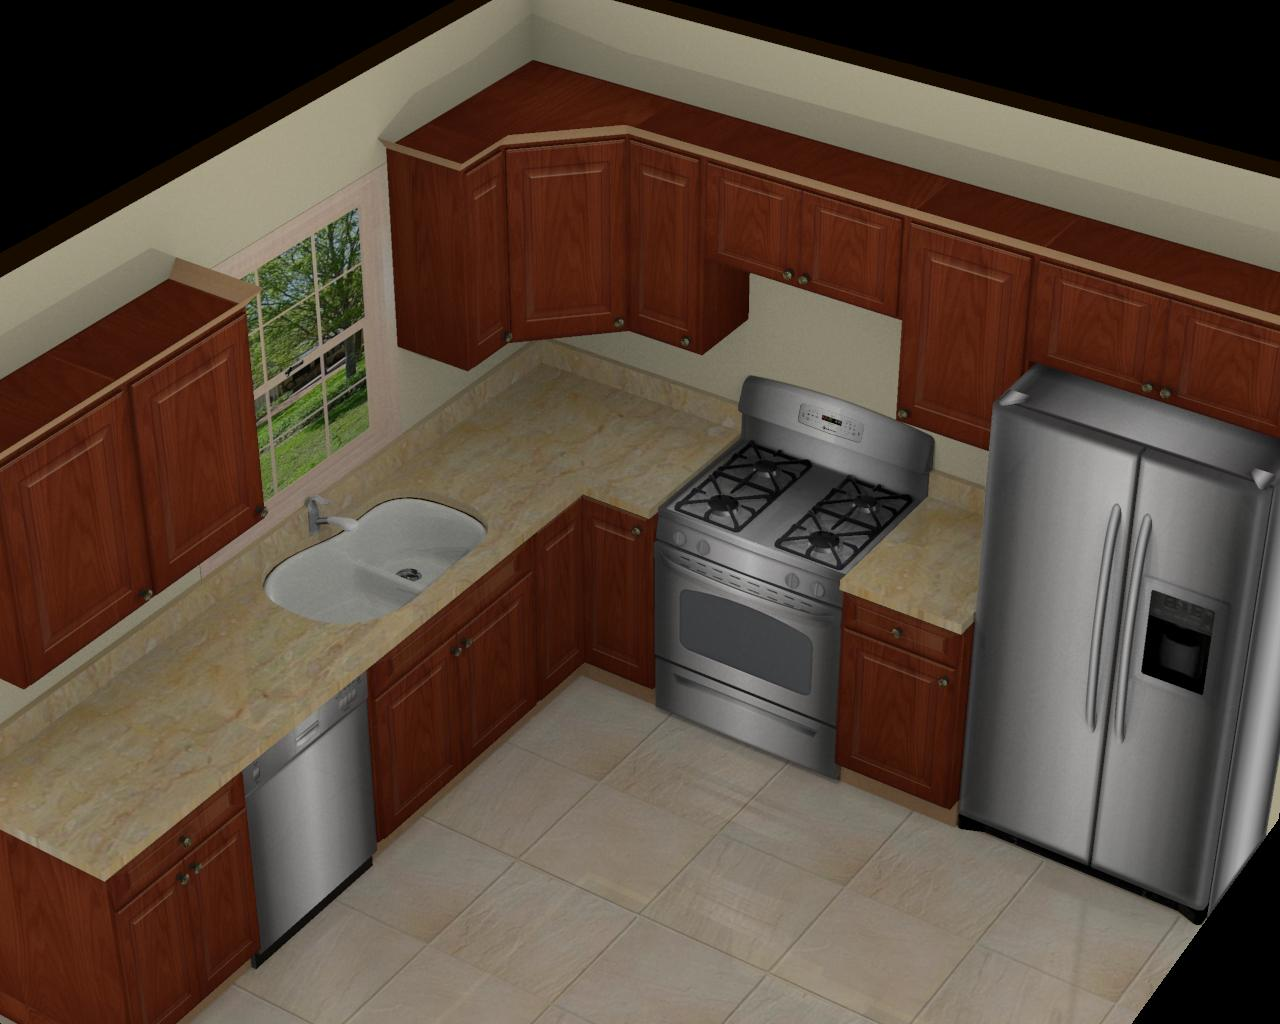 Foundation dezin decor 3d kitchen model design for Kitchen modeler